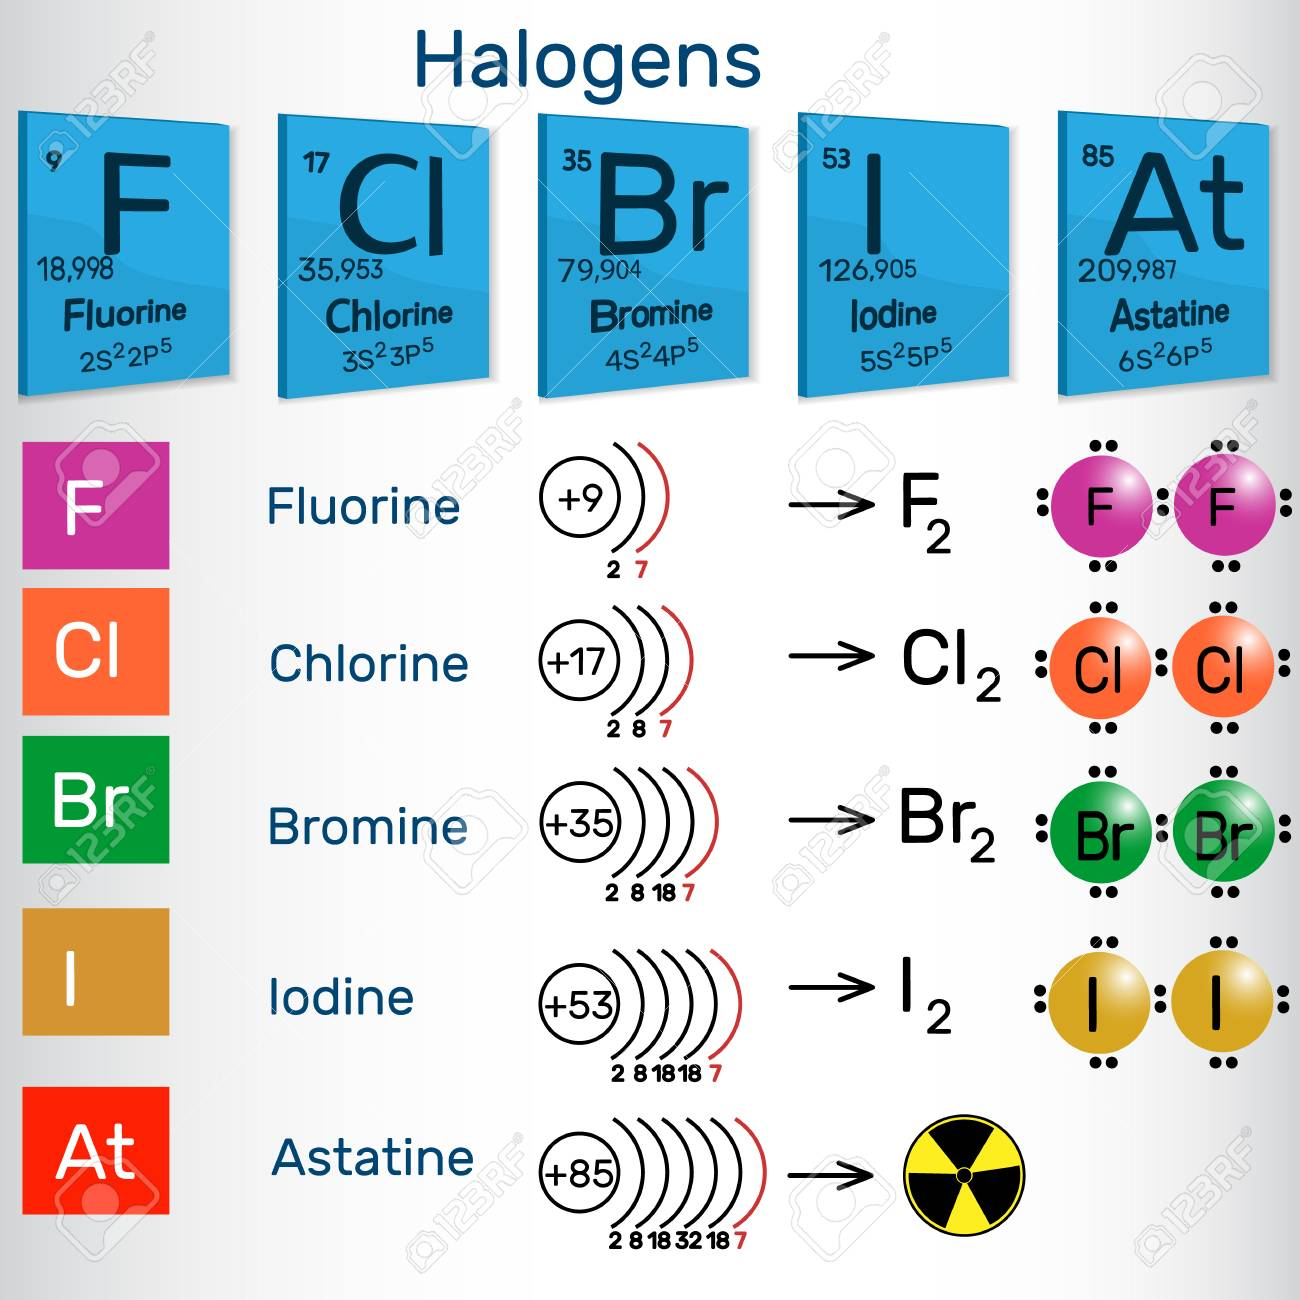 Halogens. Chemical elements of Periodic table. Vector illustration.